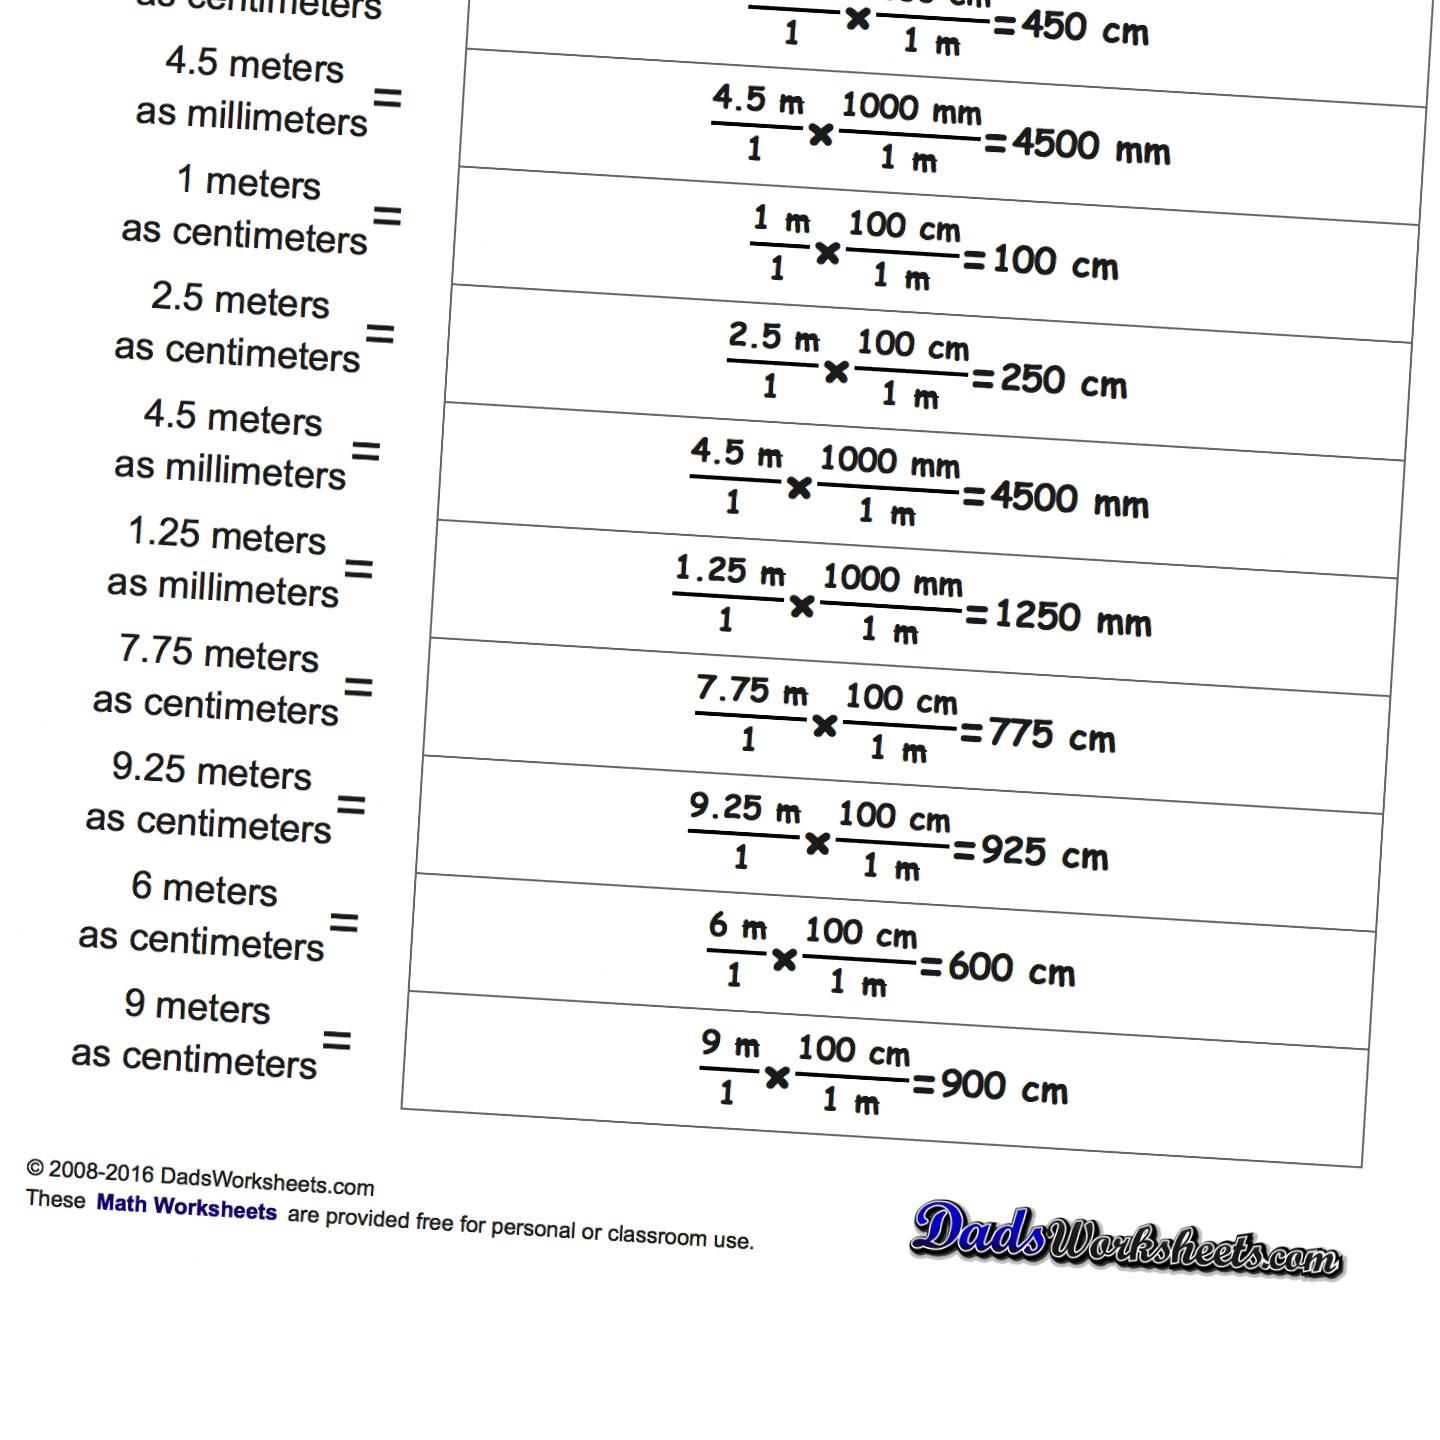 Worksheets Unit Conversion Worksheet unit conversions worksheet answers canre klonec co answers